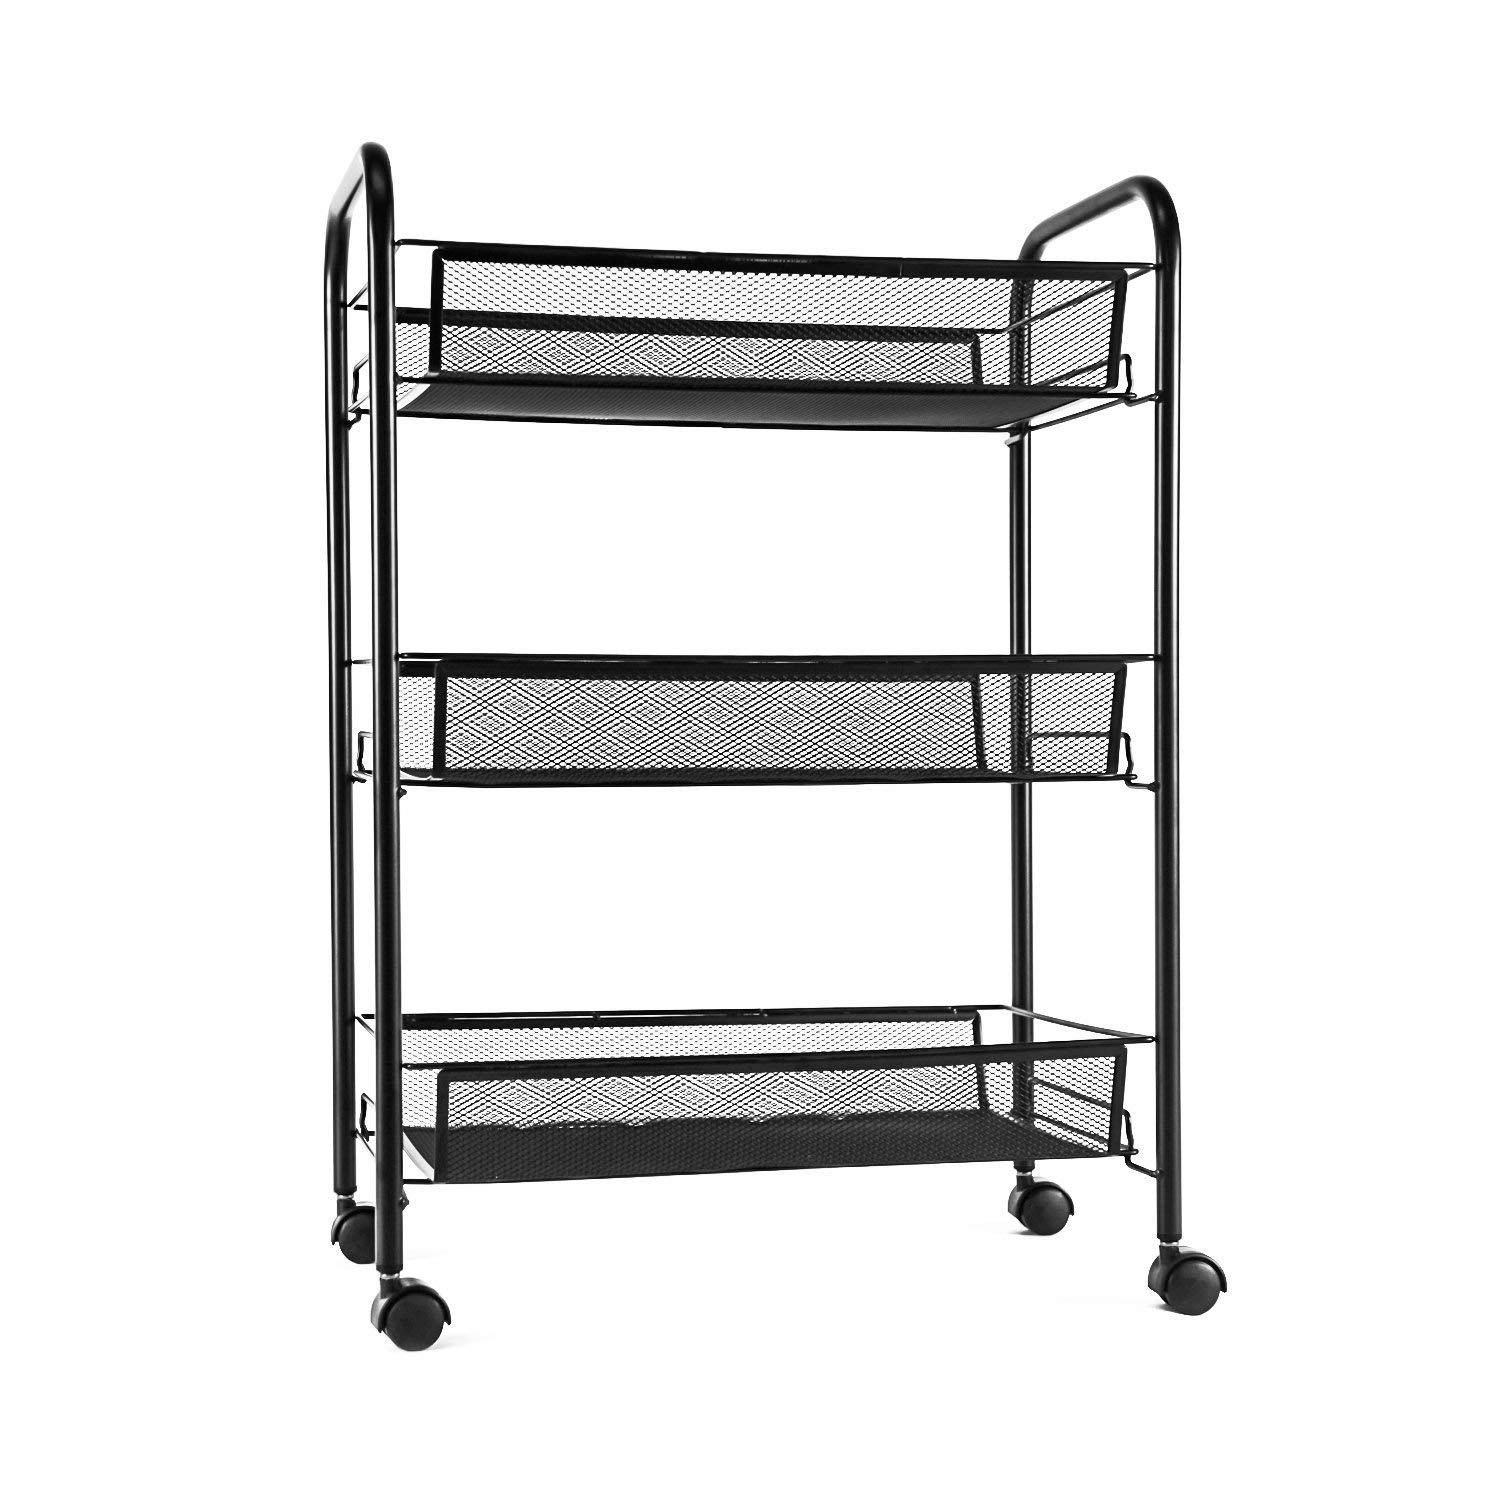 "Globe House Products GHP 17.32""x10.24""x24.41"" 3-Tier Black Iron Rolling Kitchen Bathroom Mesh Storage Cart"